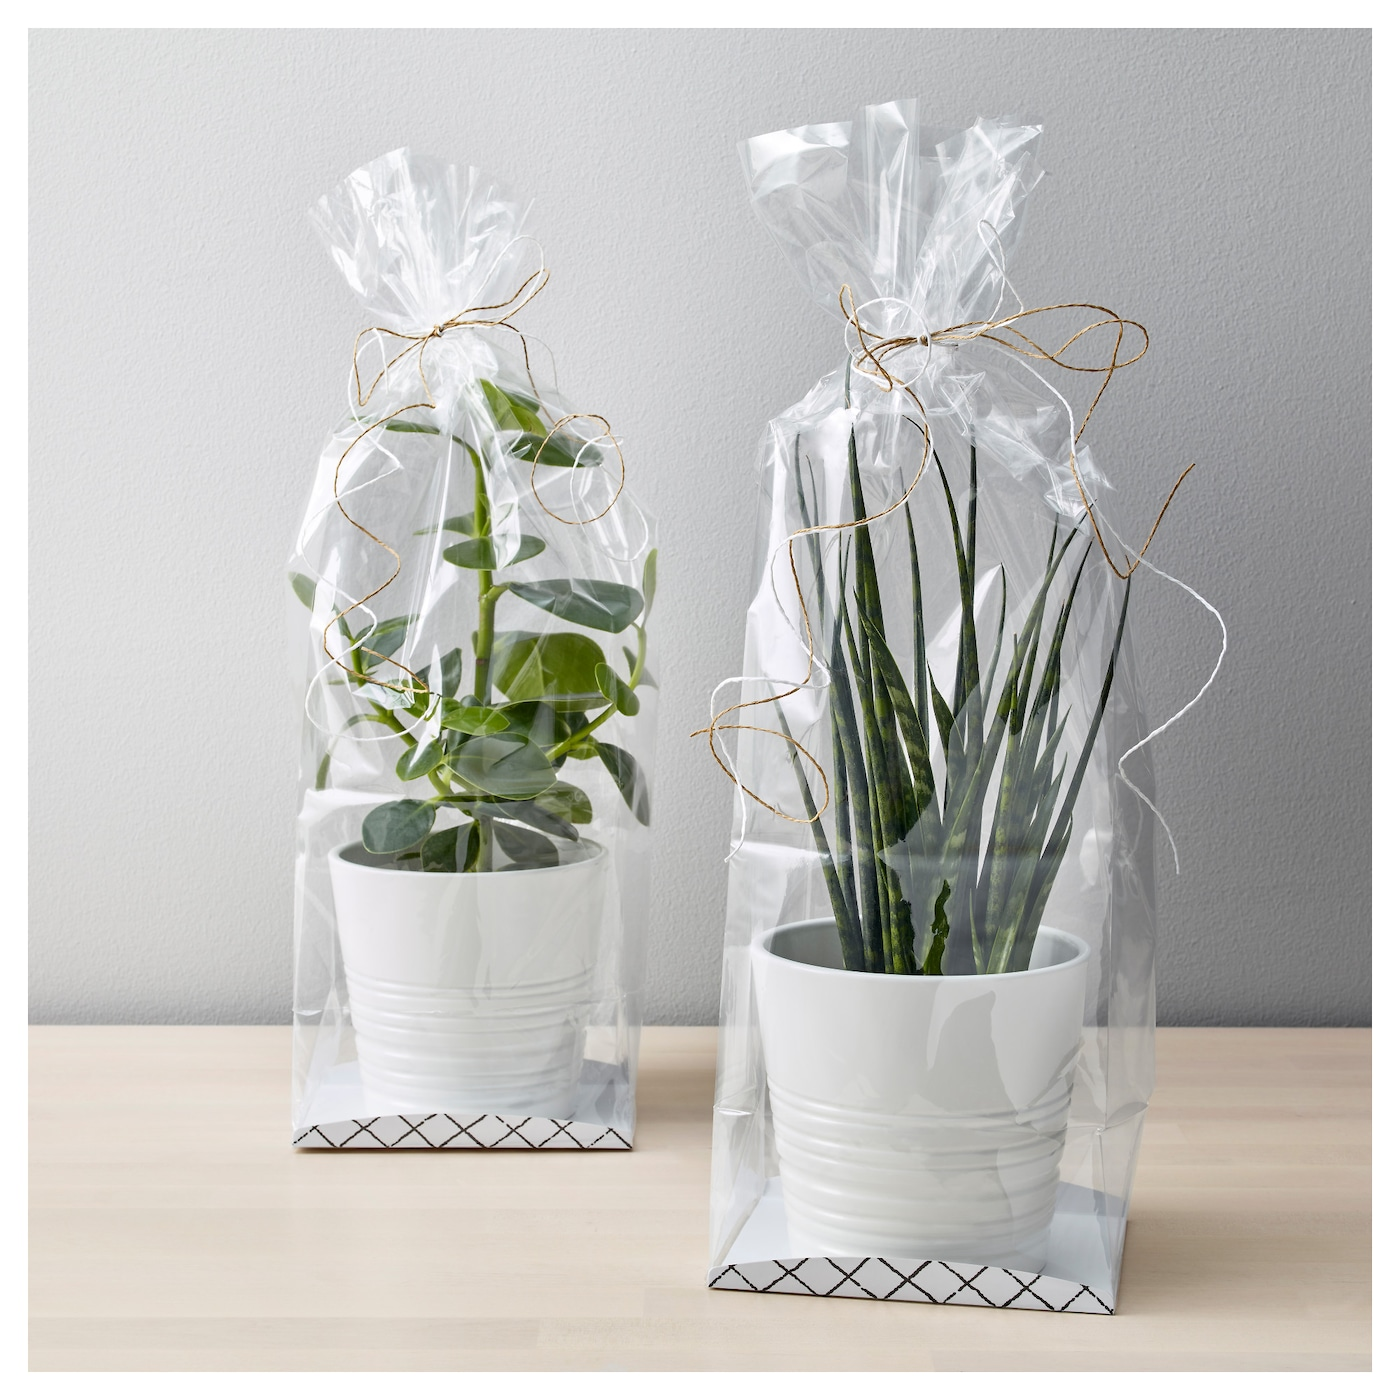 IKEA GIVANDE gift bag The gift bag is perfect if you want to bring a flower as a gift for the party.